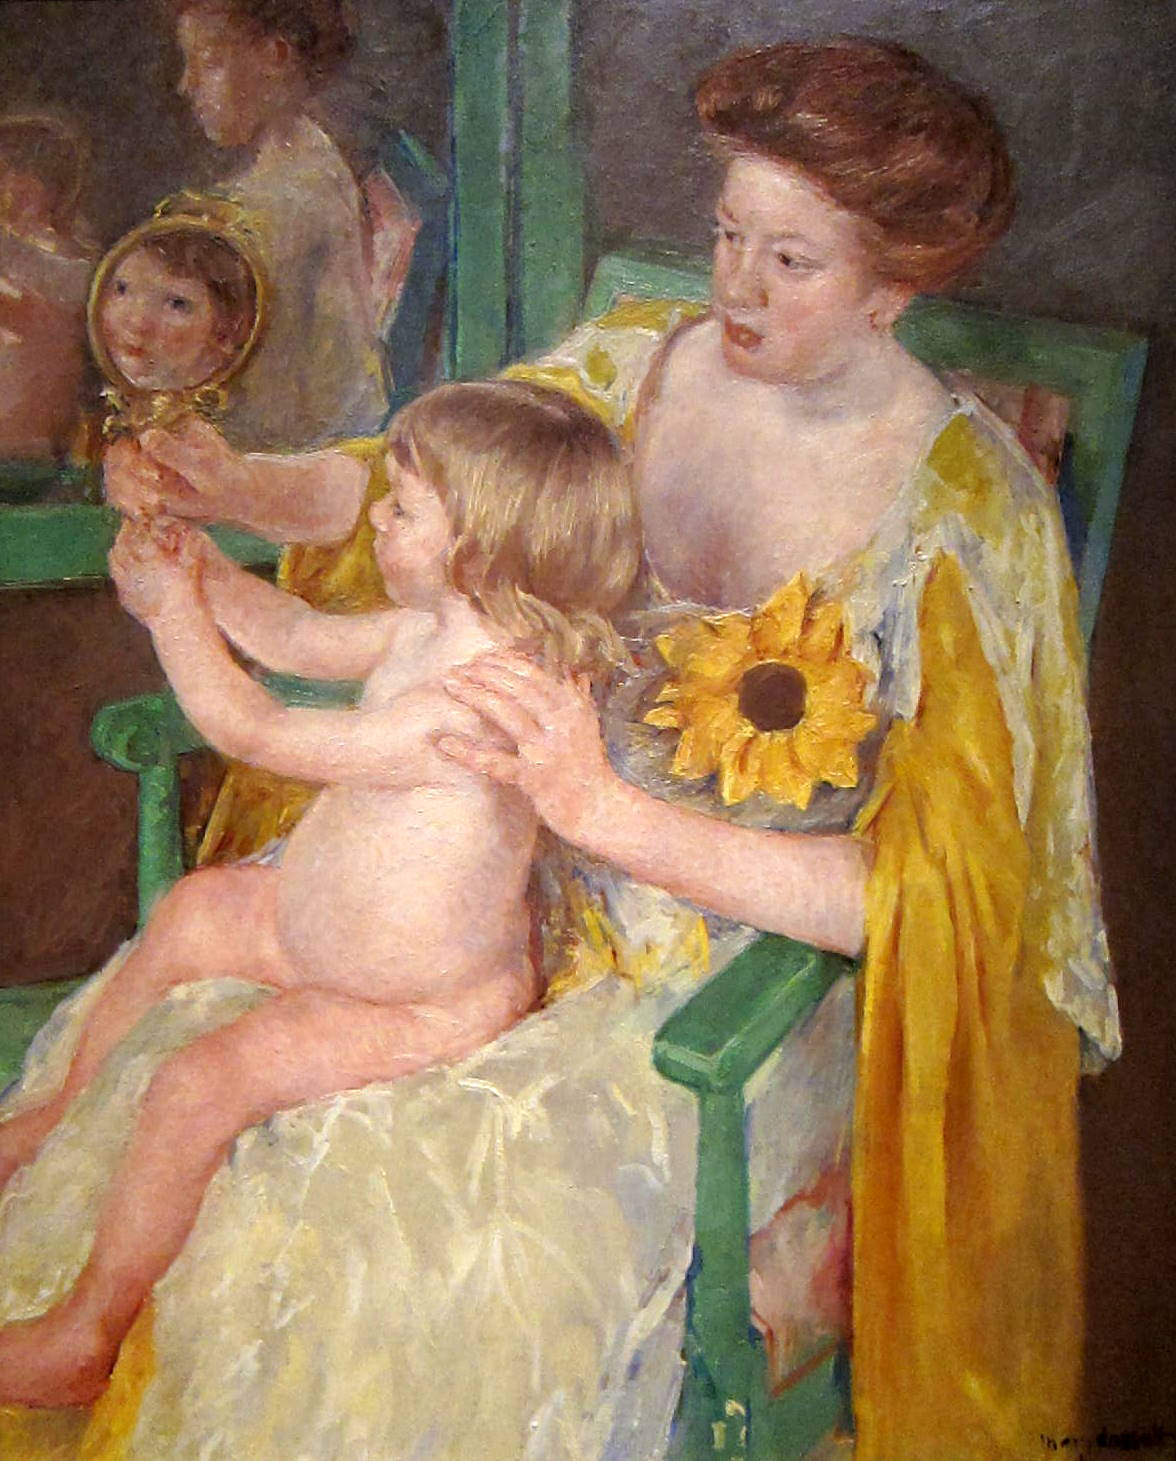 https://i0.wp.com/upload.wikimedia.org/wikipedia/commons/b/b9/Mother_and_Child_-_Mary_Cassatt.JPG